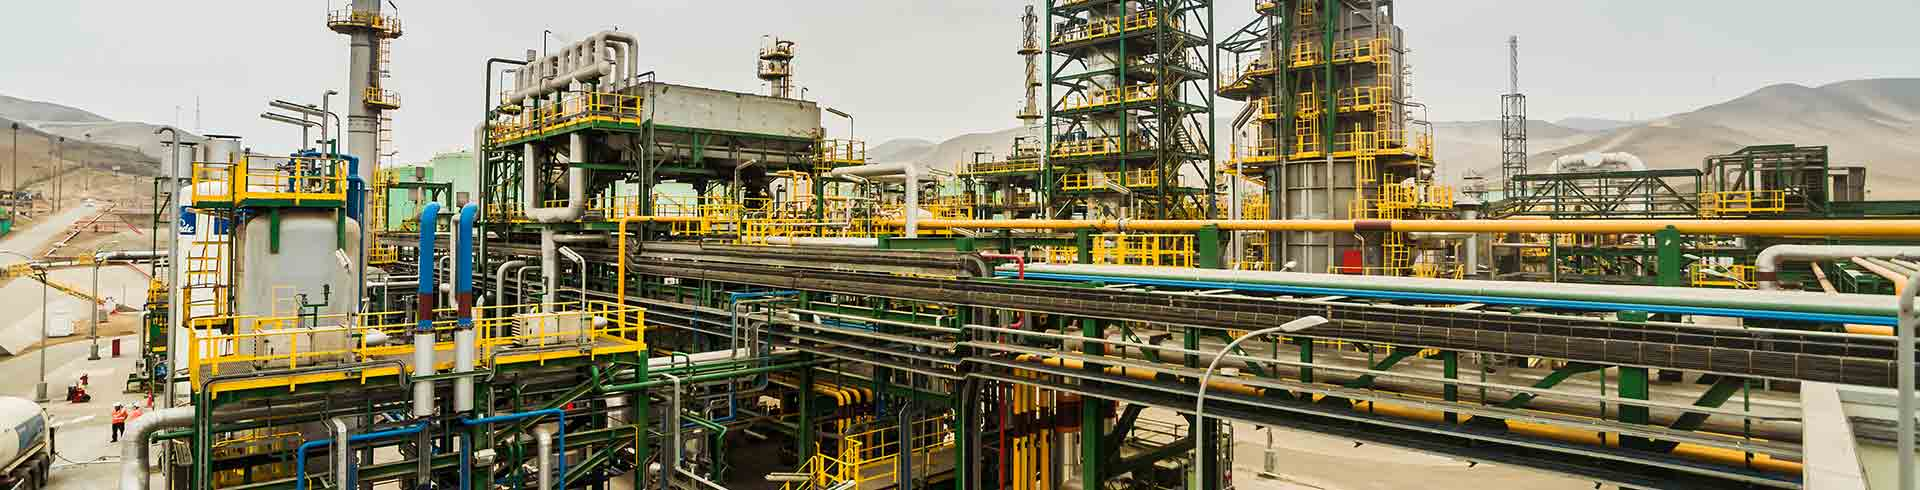 View of a Repsol industrial complex